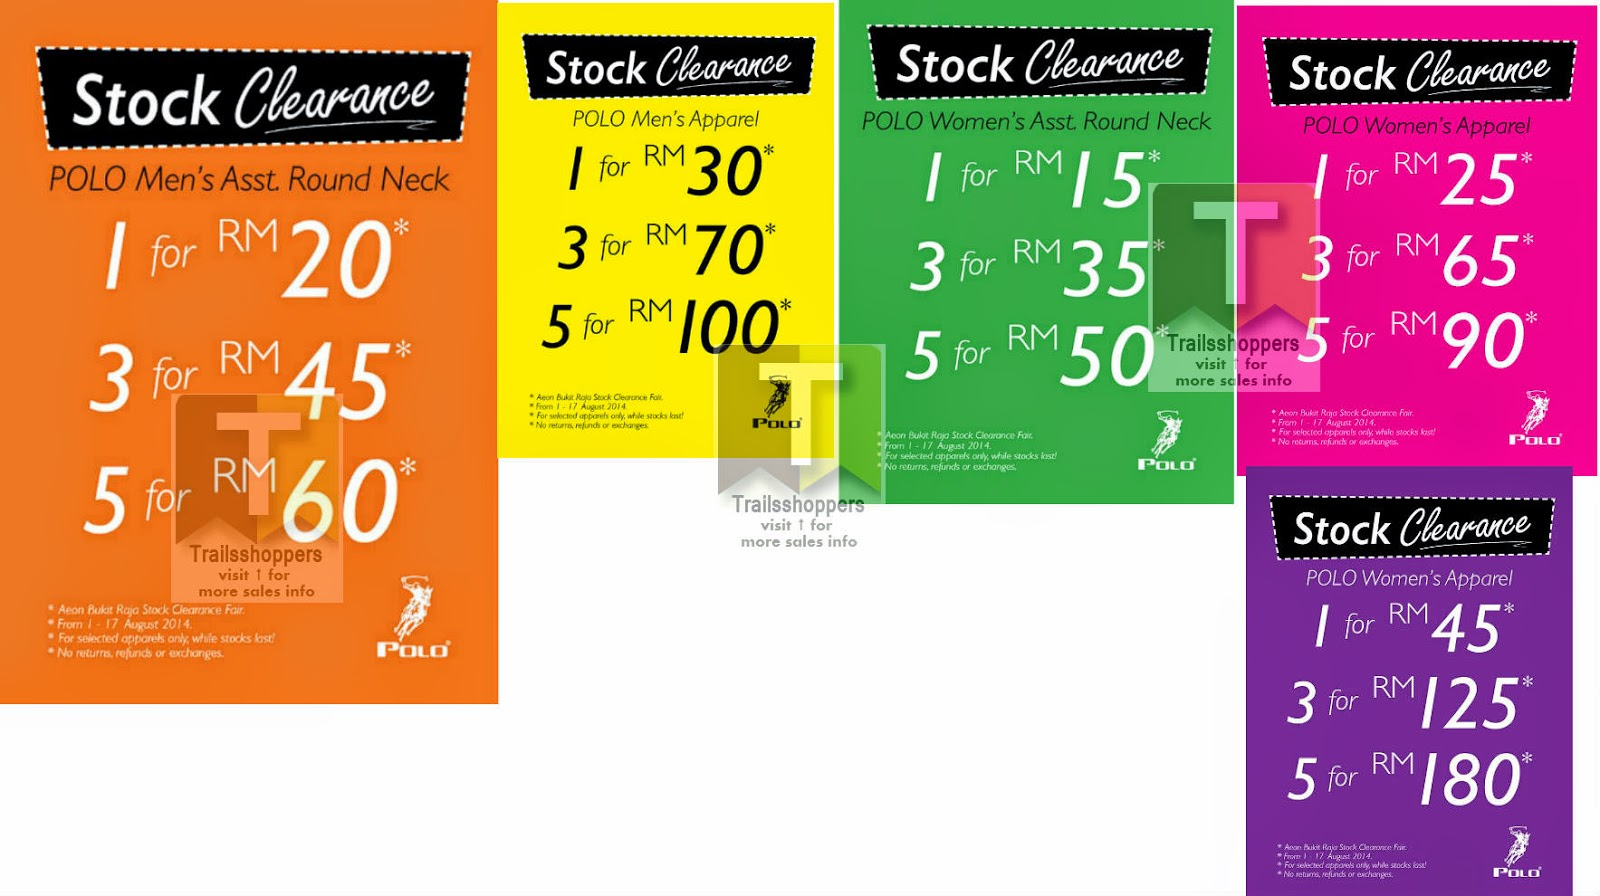 Polo Haus Stock Clearance Fair 2014 offers